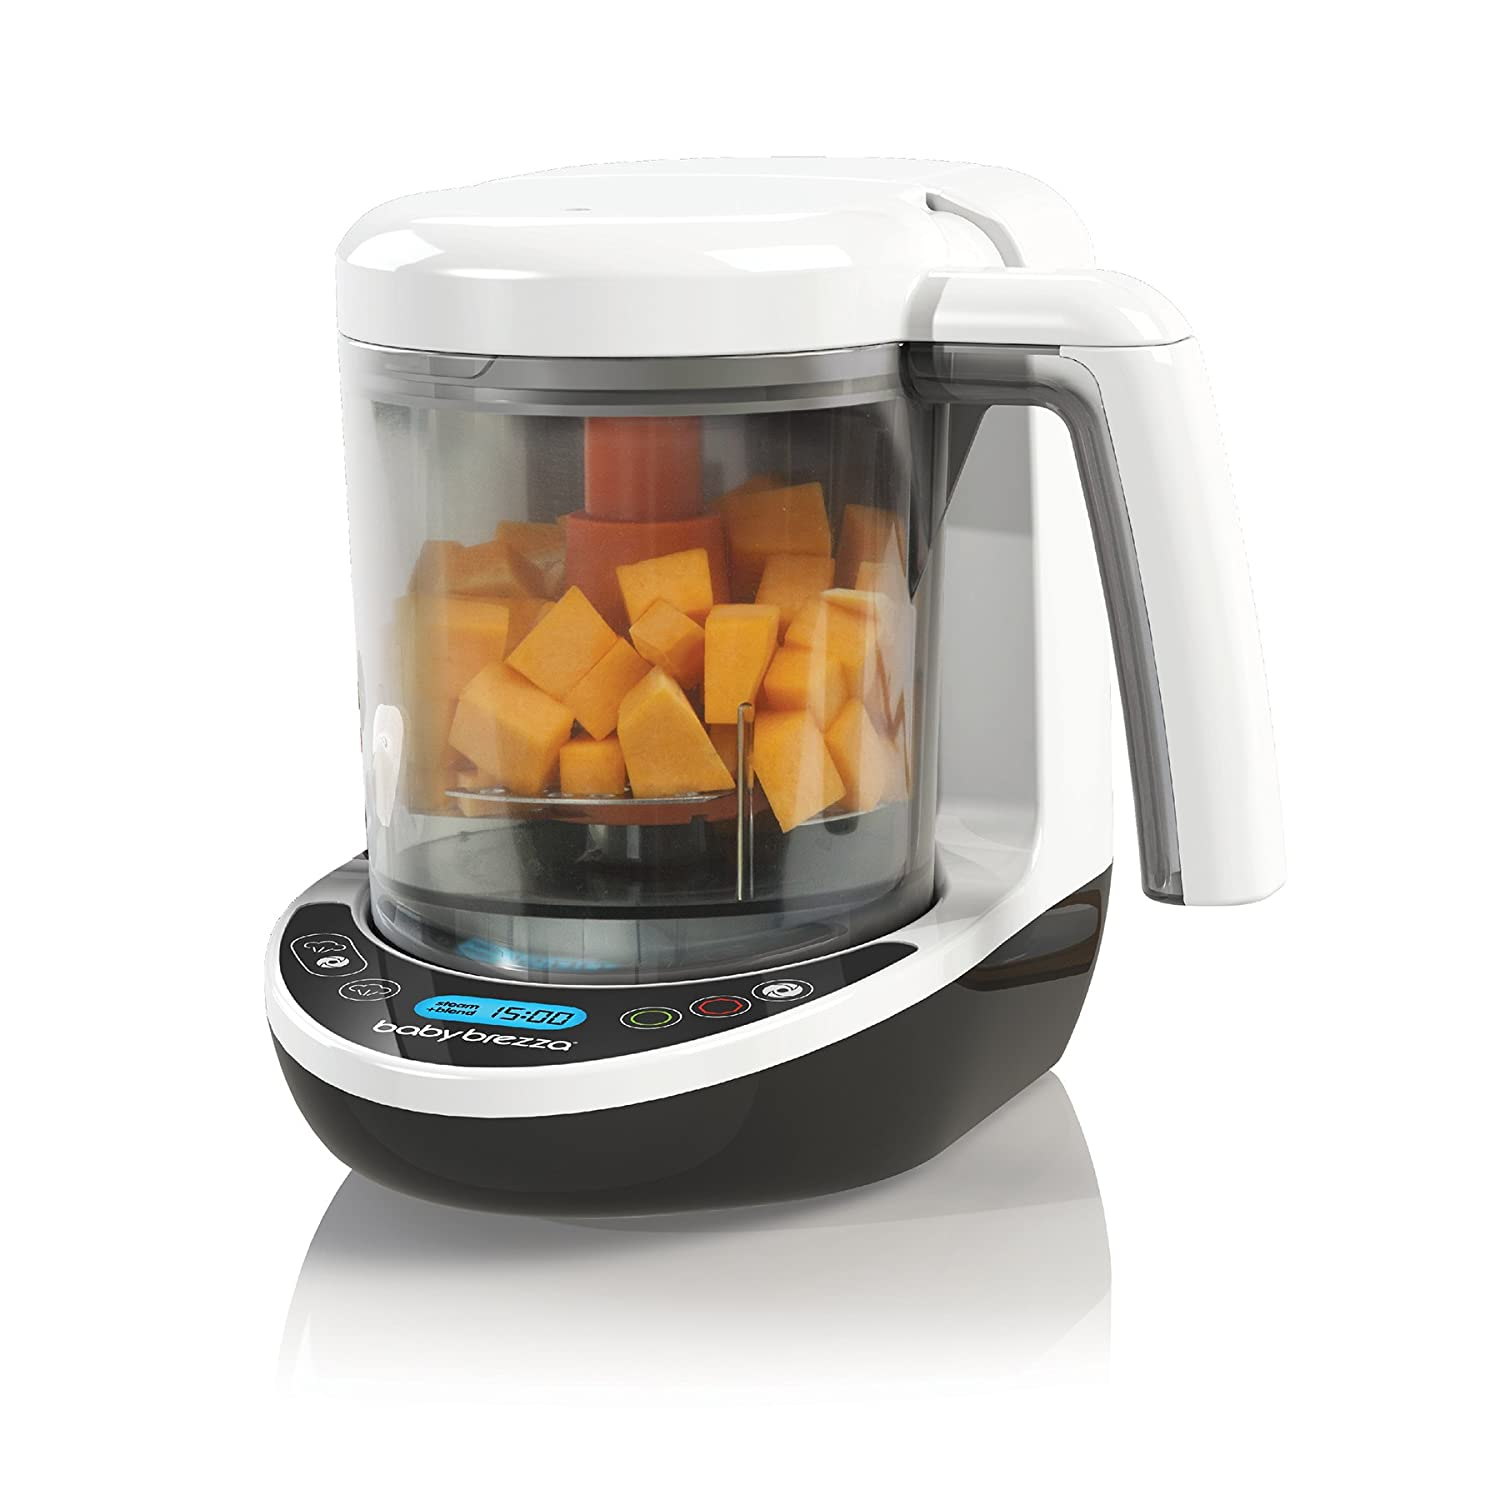 Baby Brezza BRZ00141 Baby Food Maker Complete, White